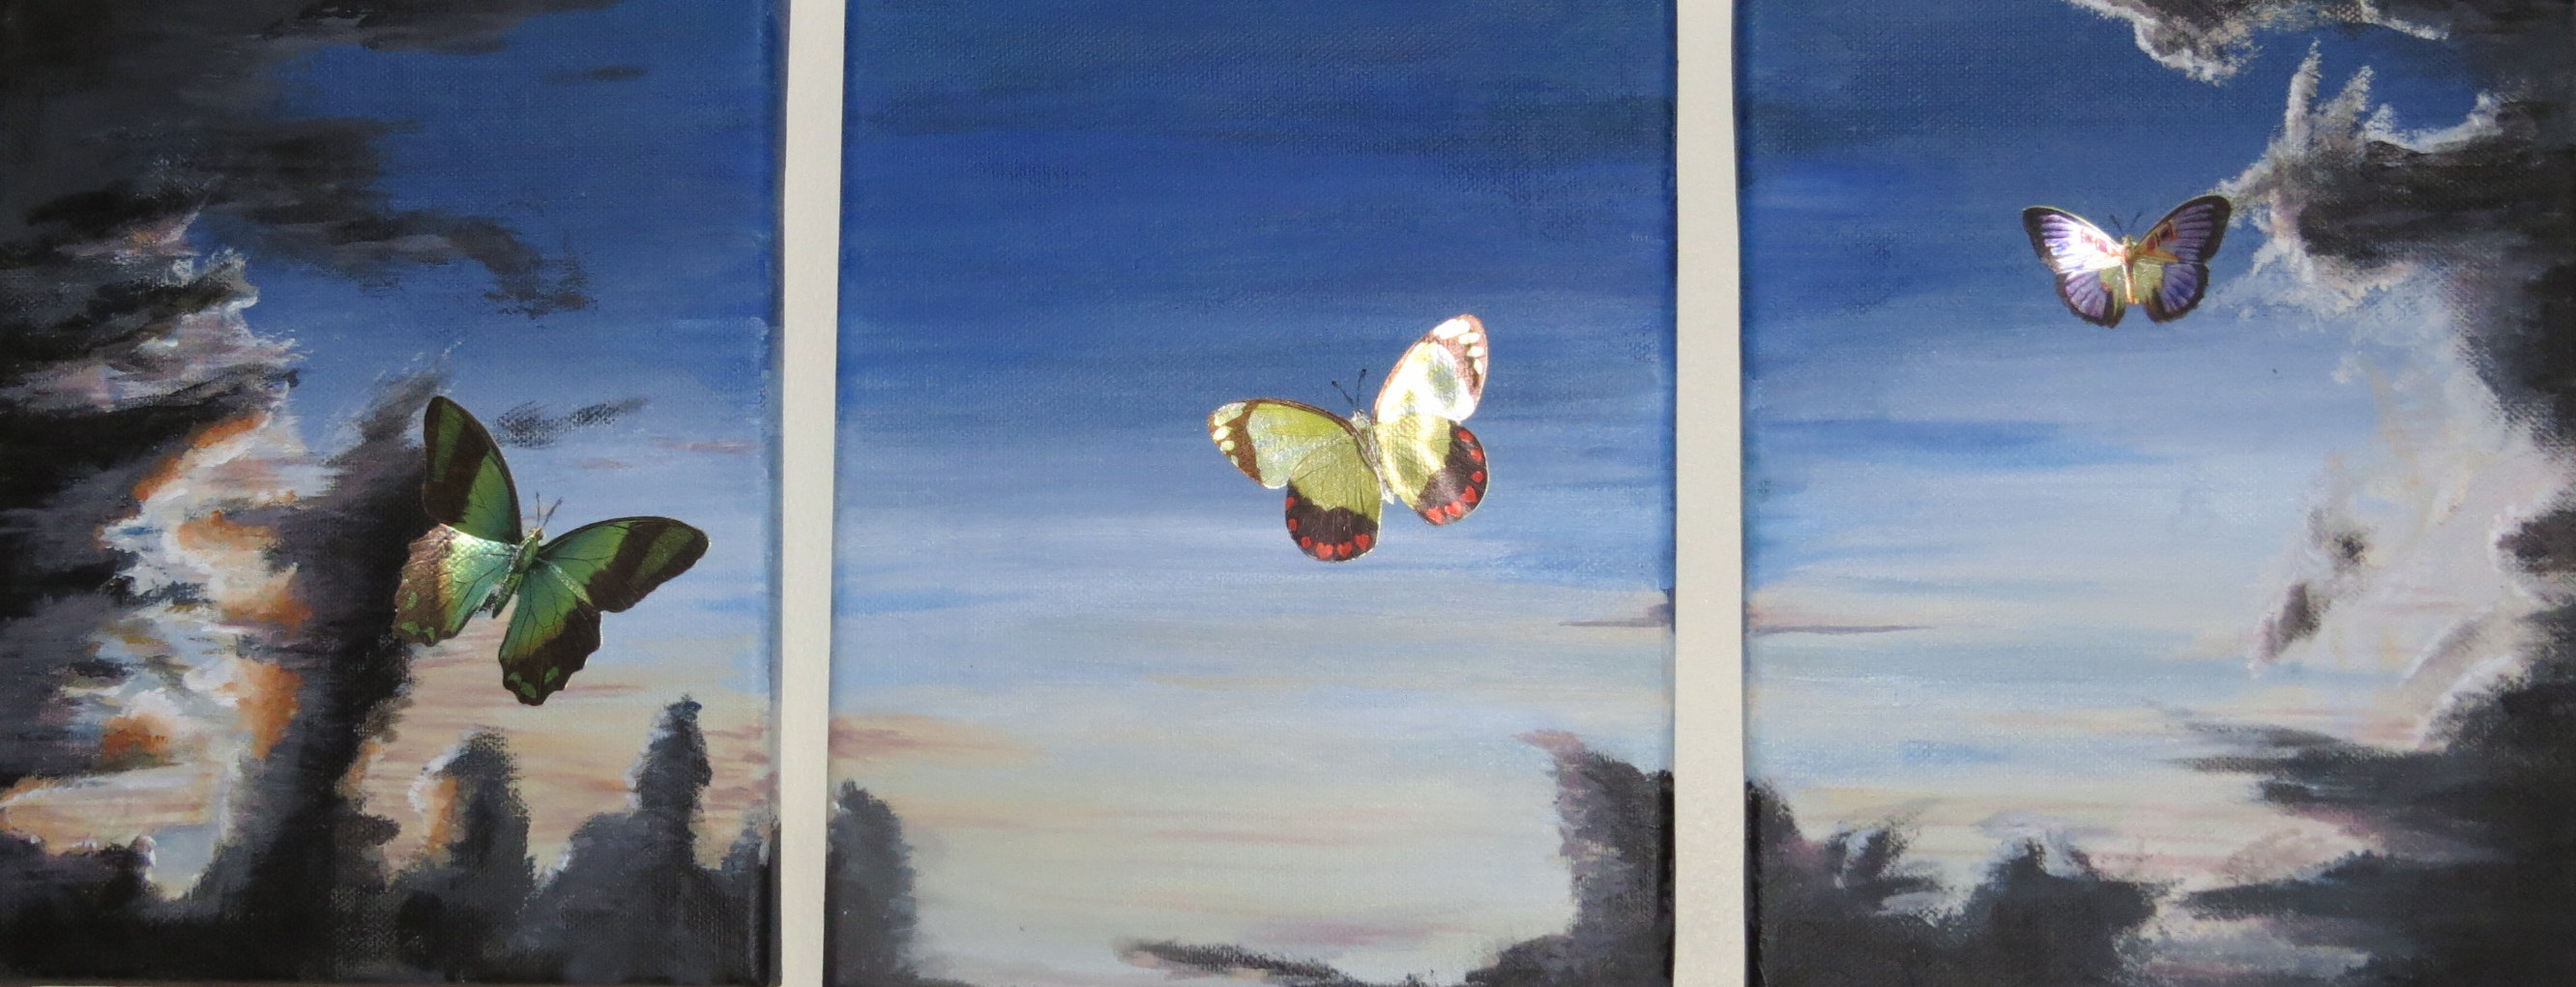 3 x Mixed Media on canvas - Inspied by an image found online. The butterflies are die cut images